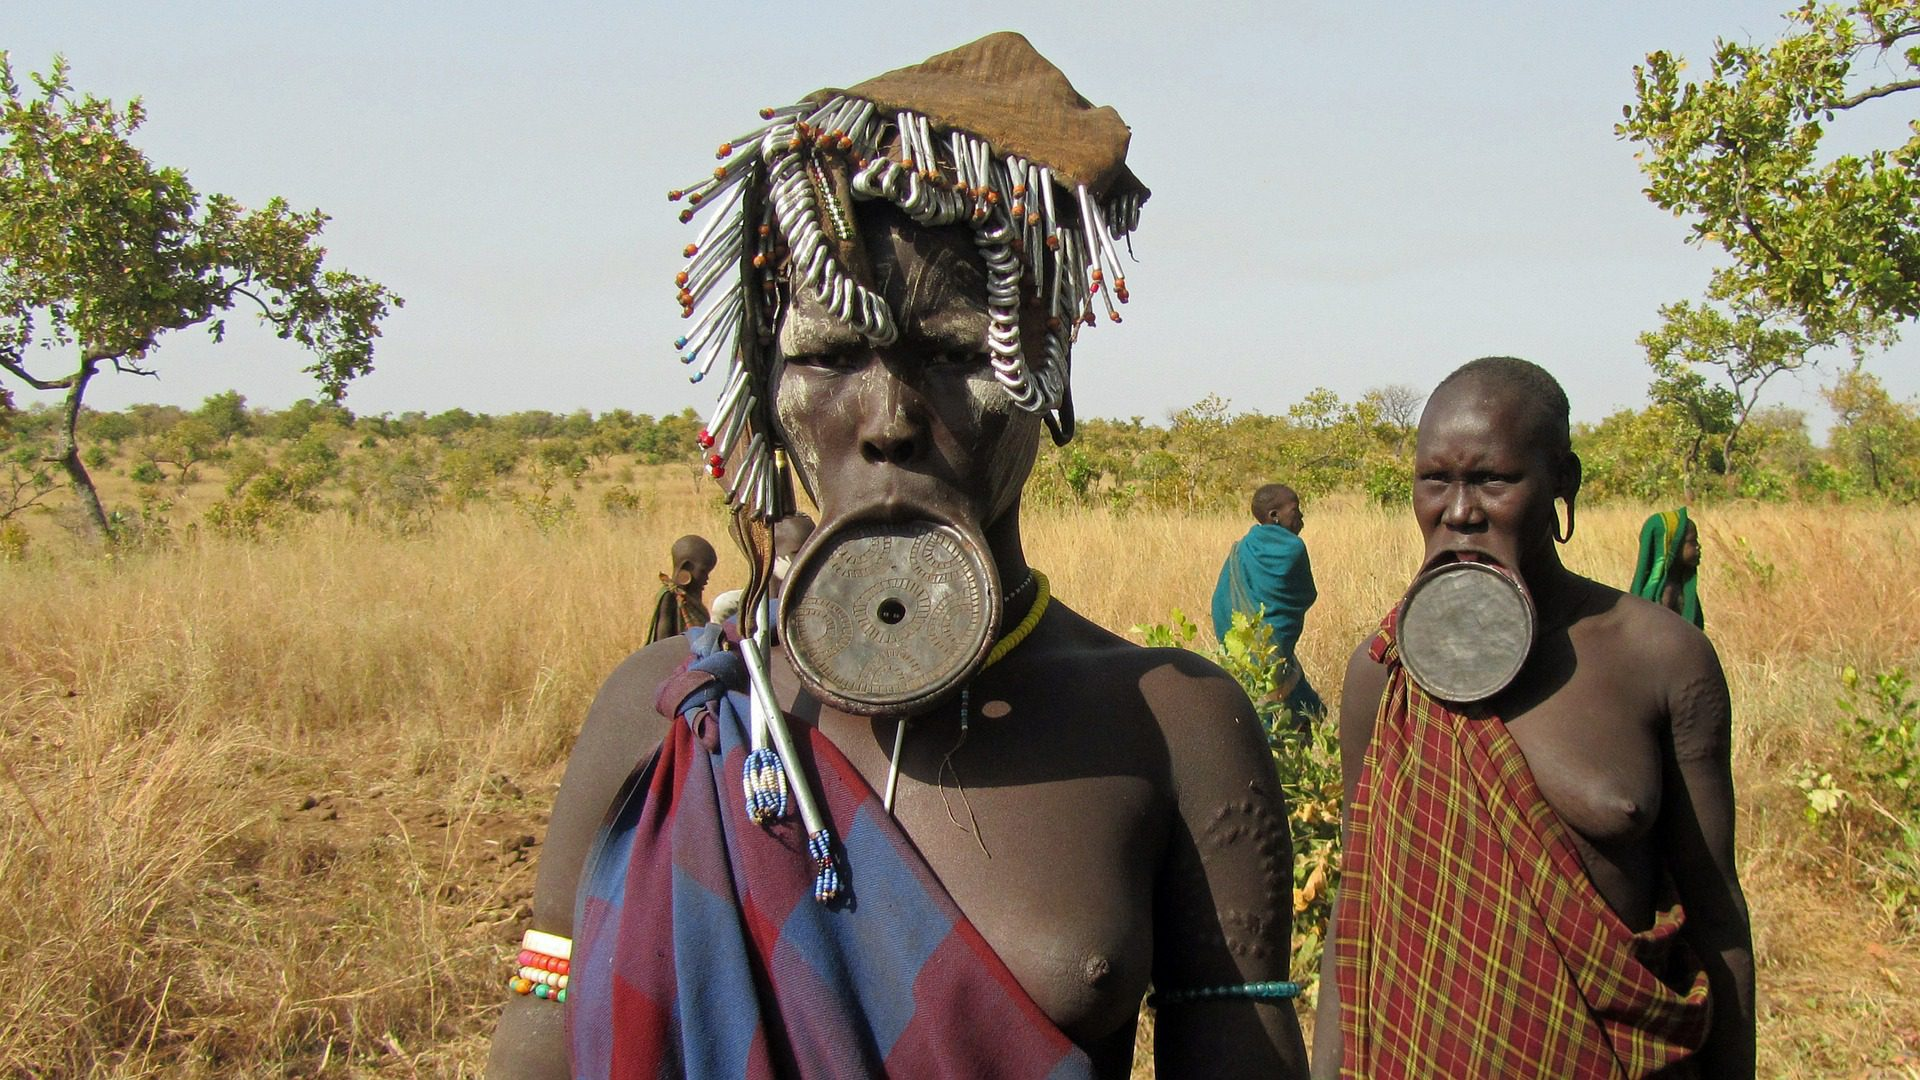 two mursi people with large lip plates dressed and adorned in their authentic tribal wear in the omo valley seen on safari in Ethiopia